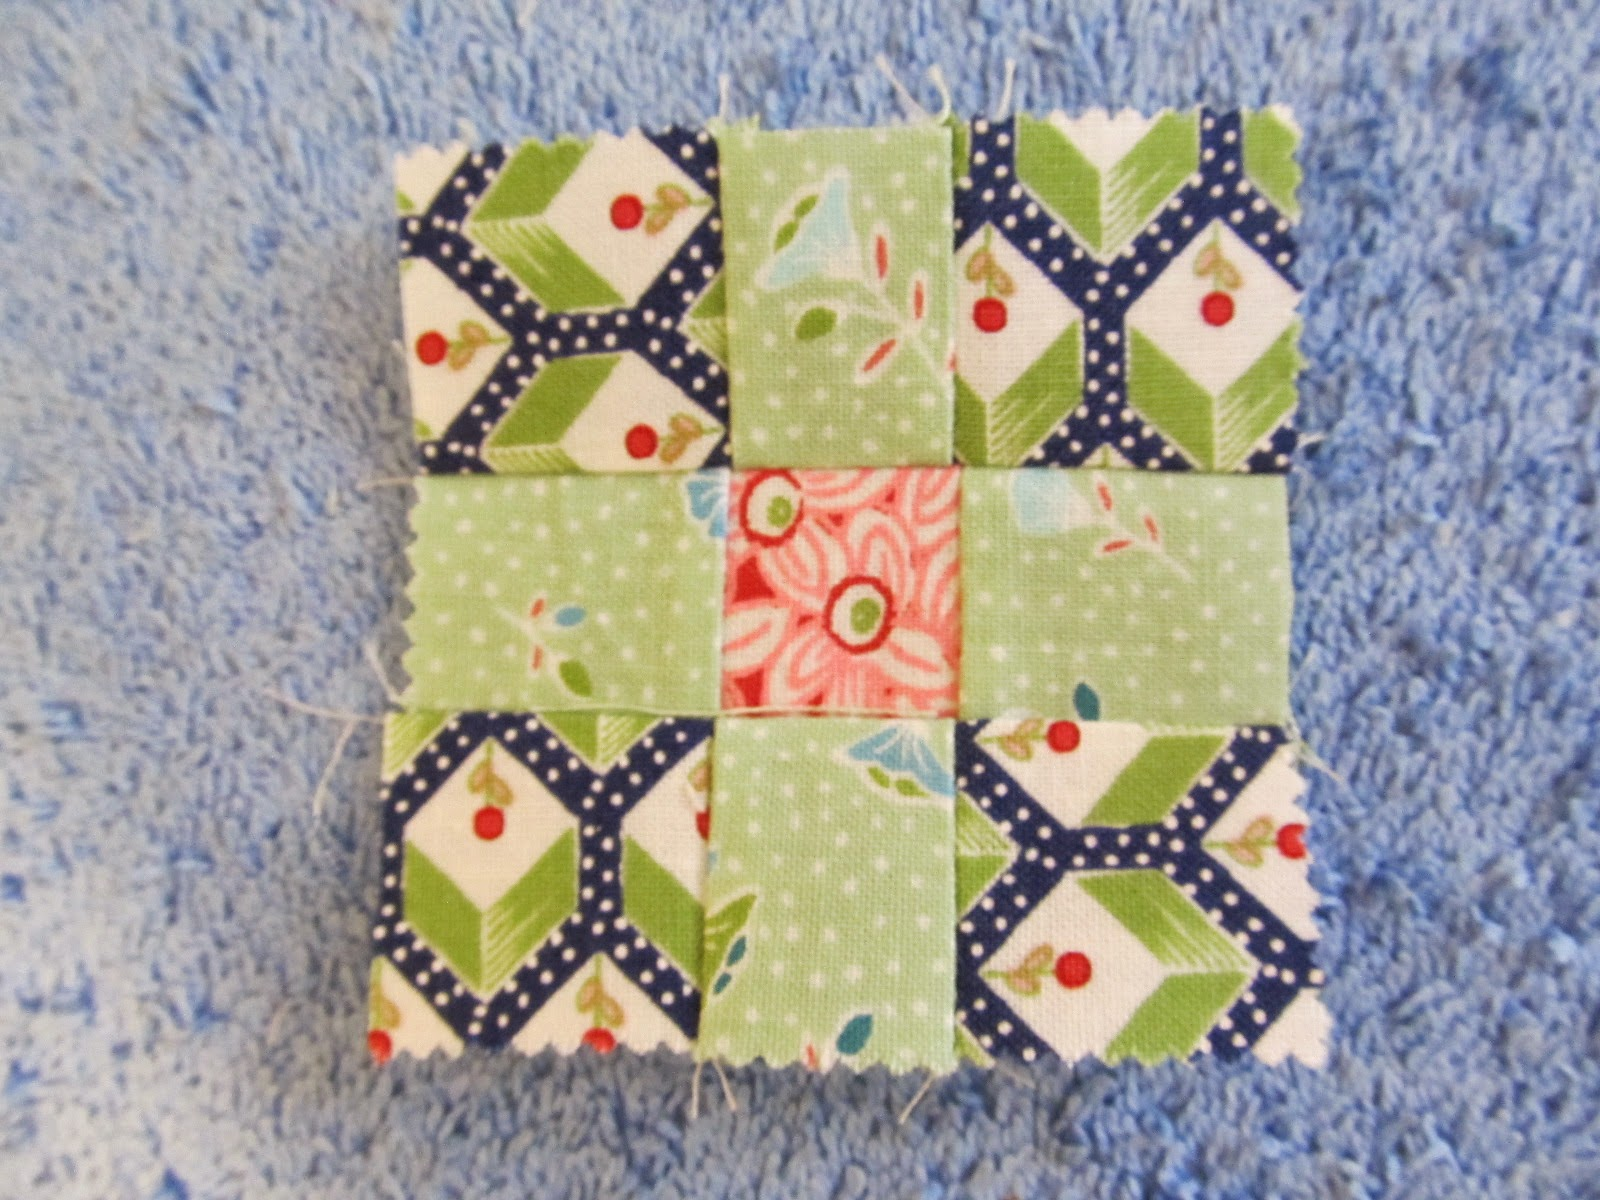 making a nine patch quilt block